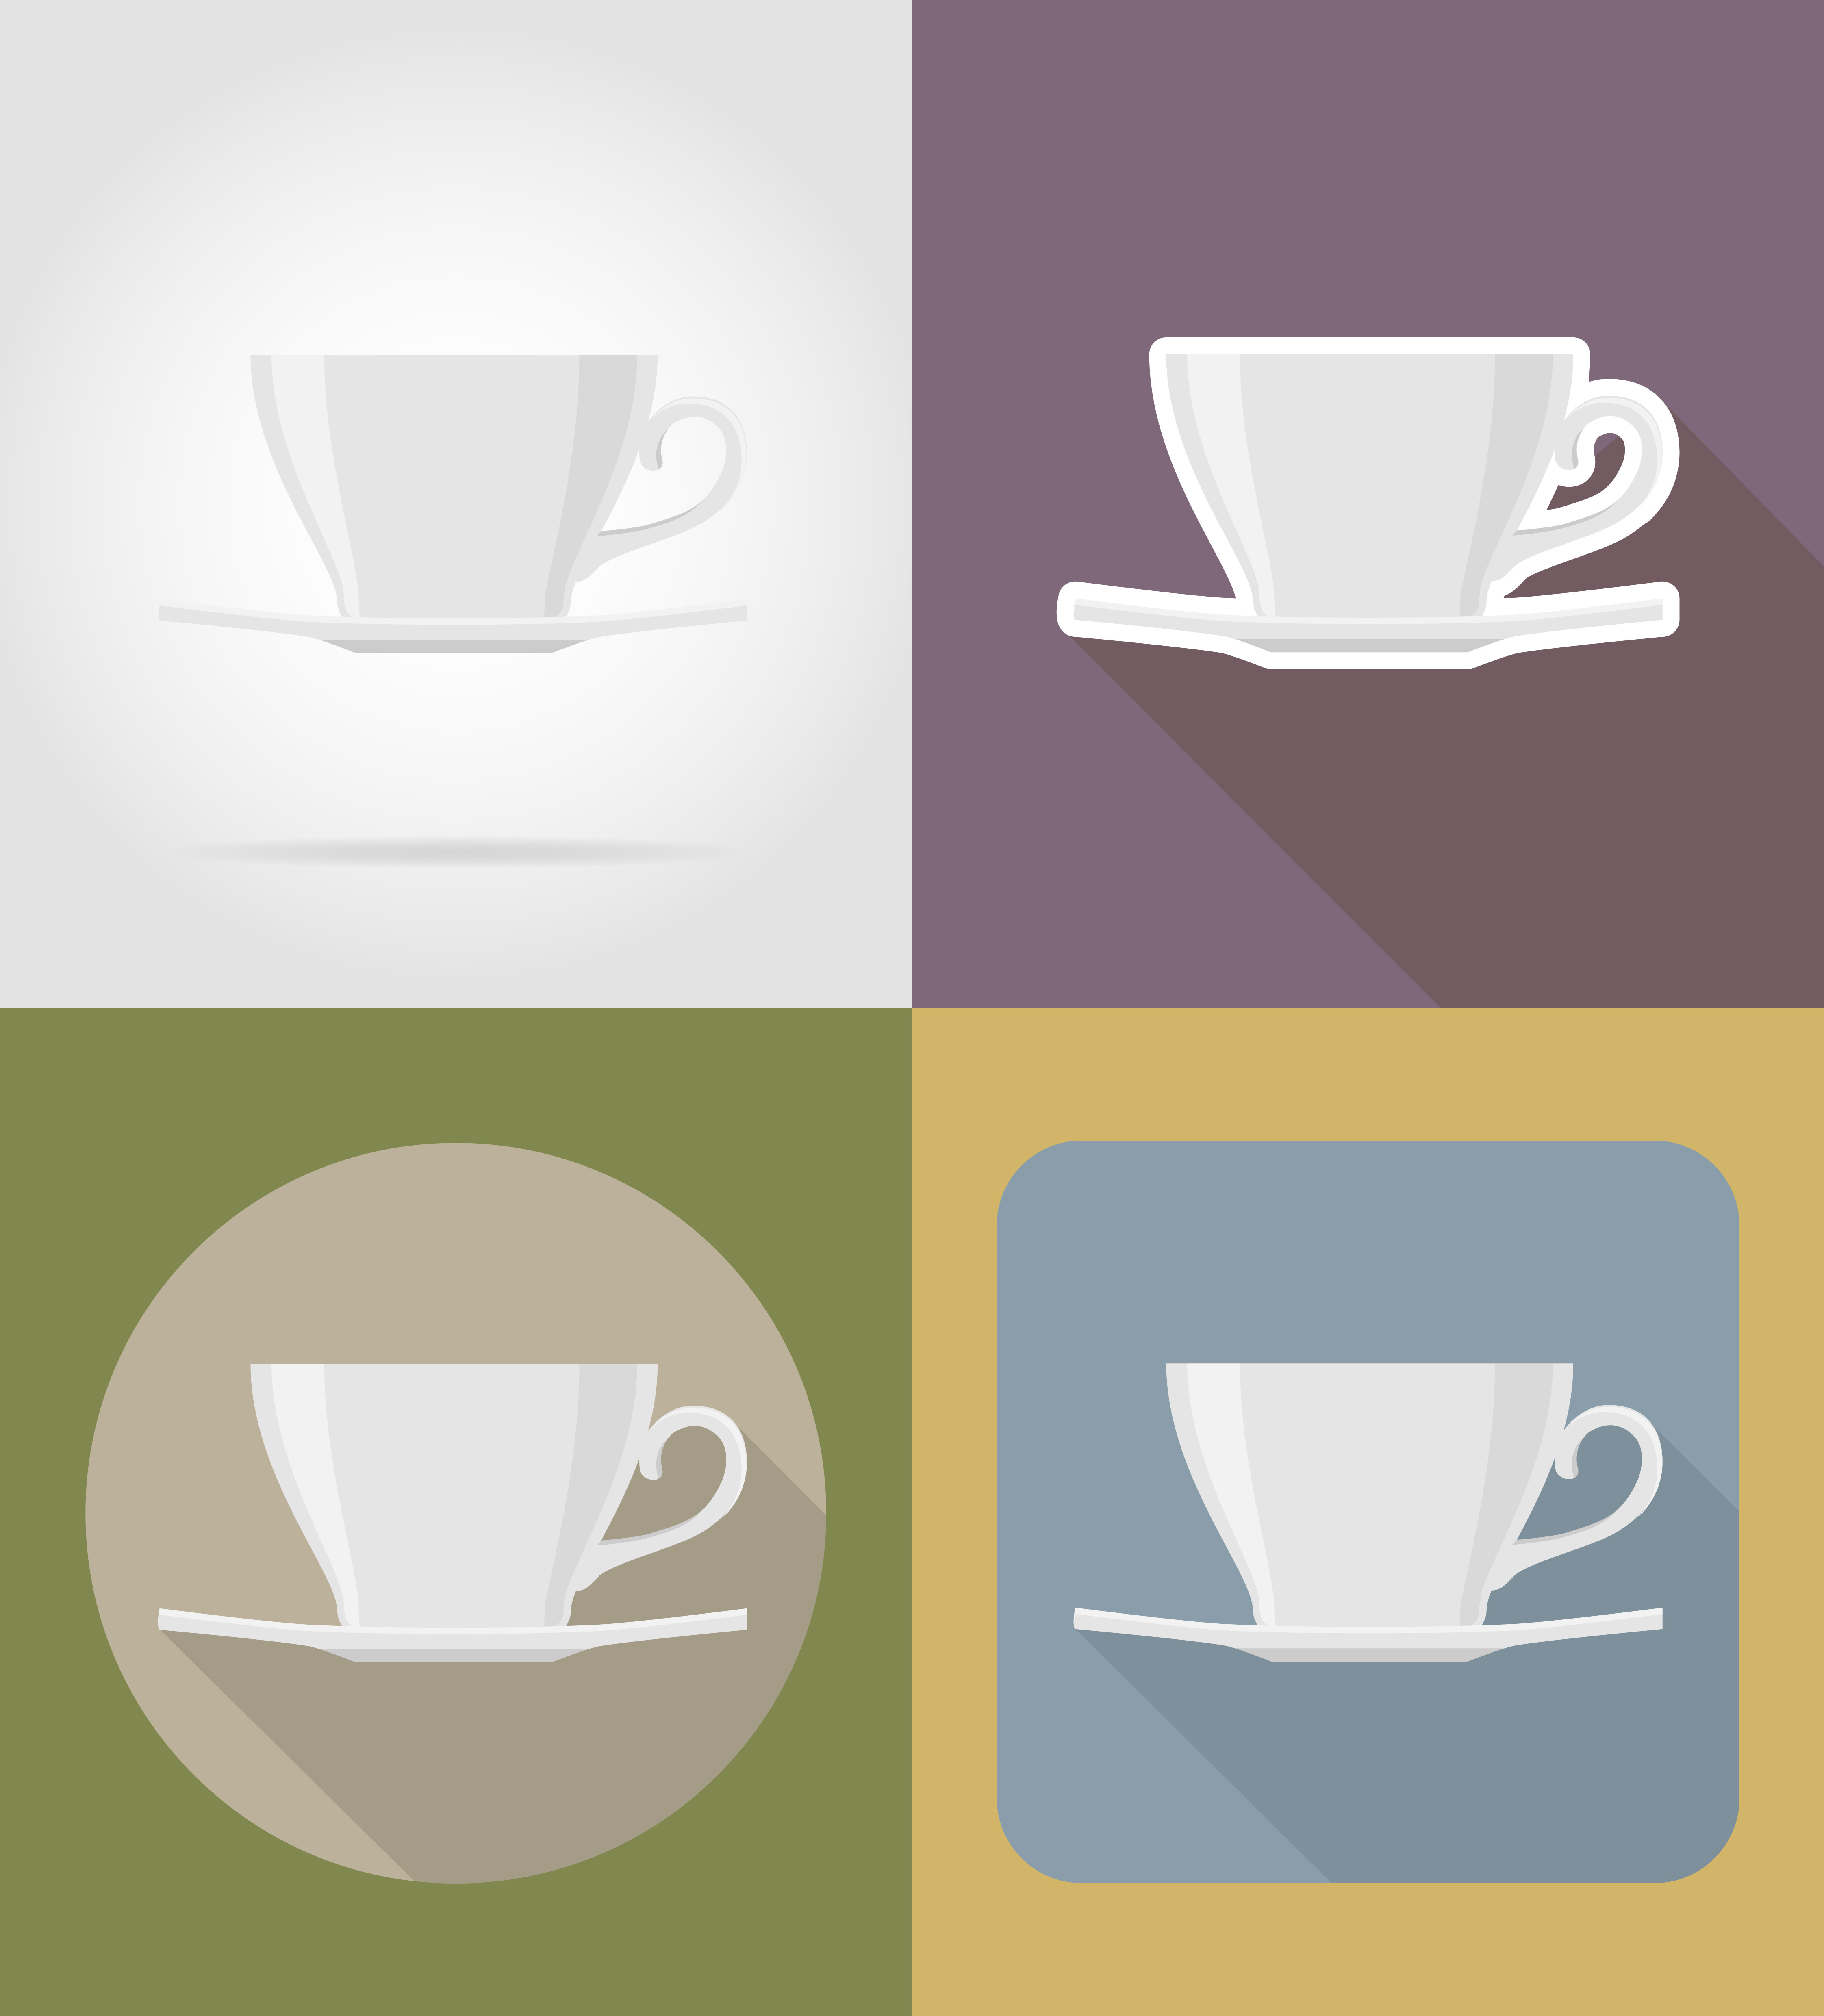 Cup Saucer Objects And Equipment For The Food Vector Illustration Download Free Vectors Clipart Graphics Vector Art